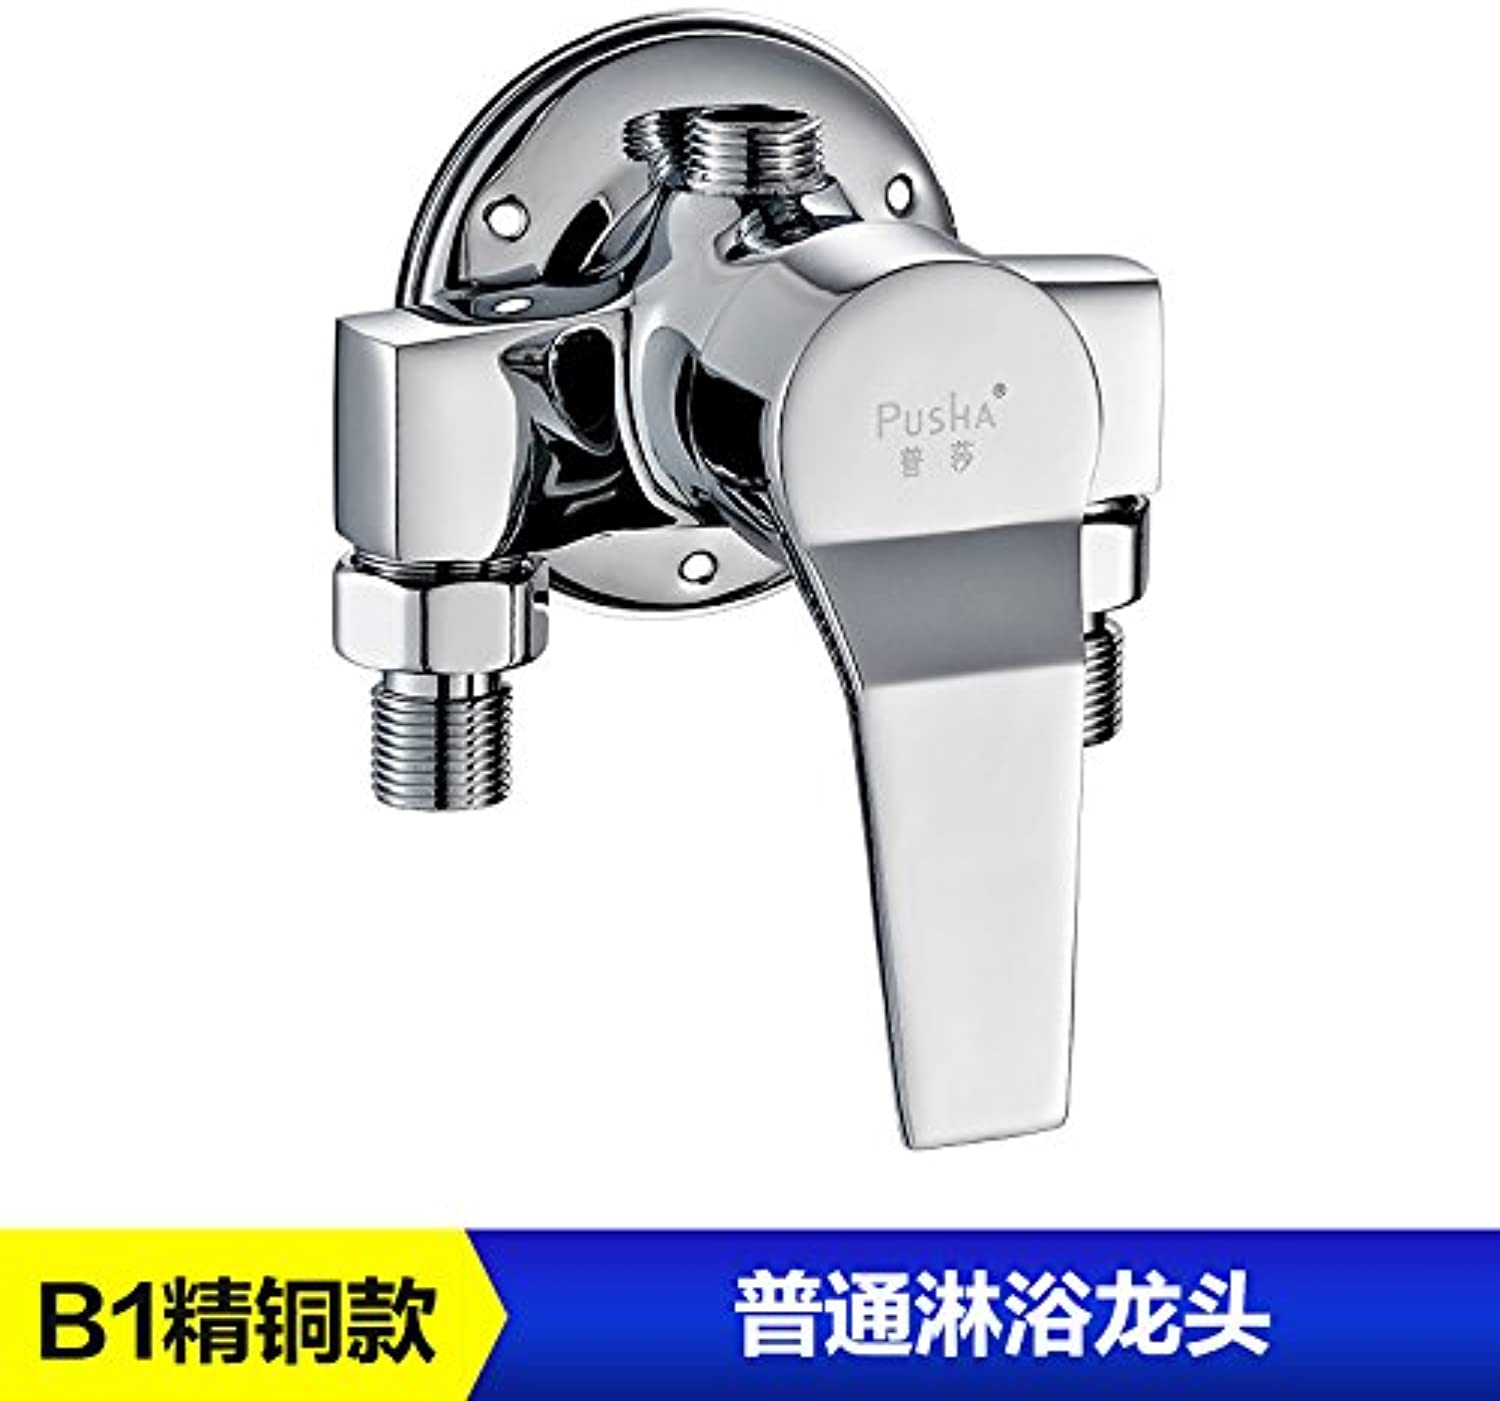 Hlluya Professional Sink Mixer Tap Kitchen Faucet In the showers set out the taps in the shower faucet copper Water mixing valve cold water,B1